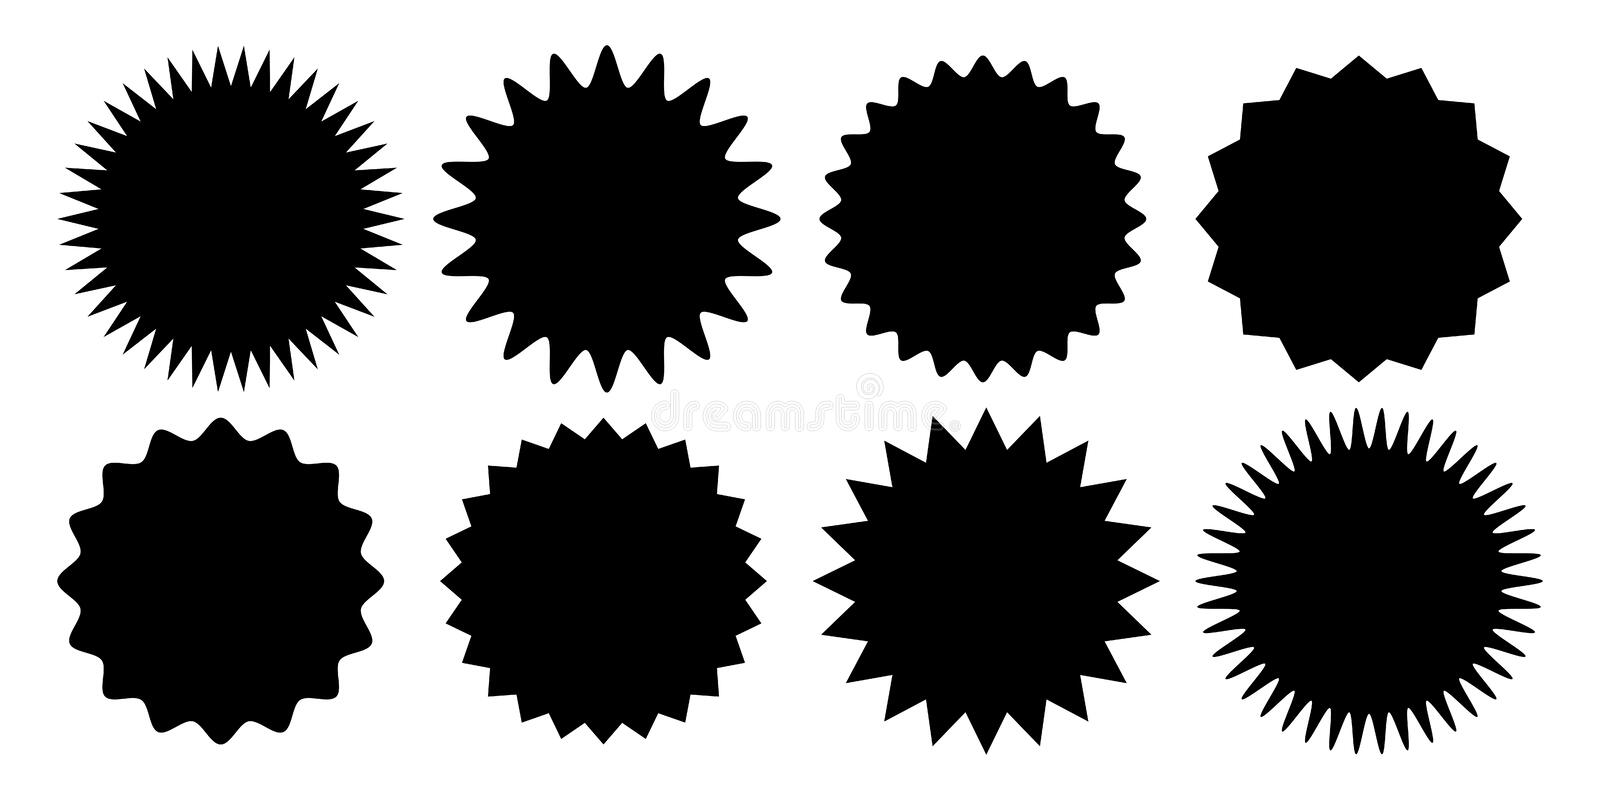 Promo sale sticker starburst sunburst vector icon stock illustration